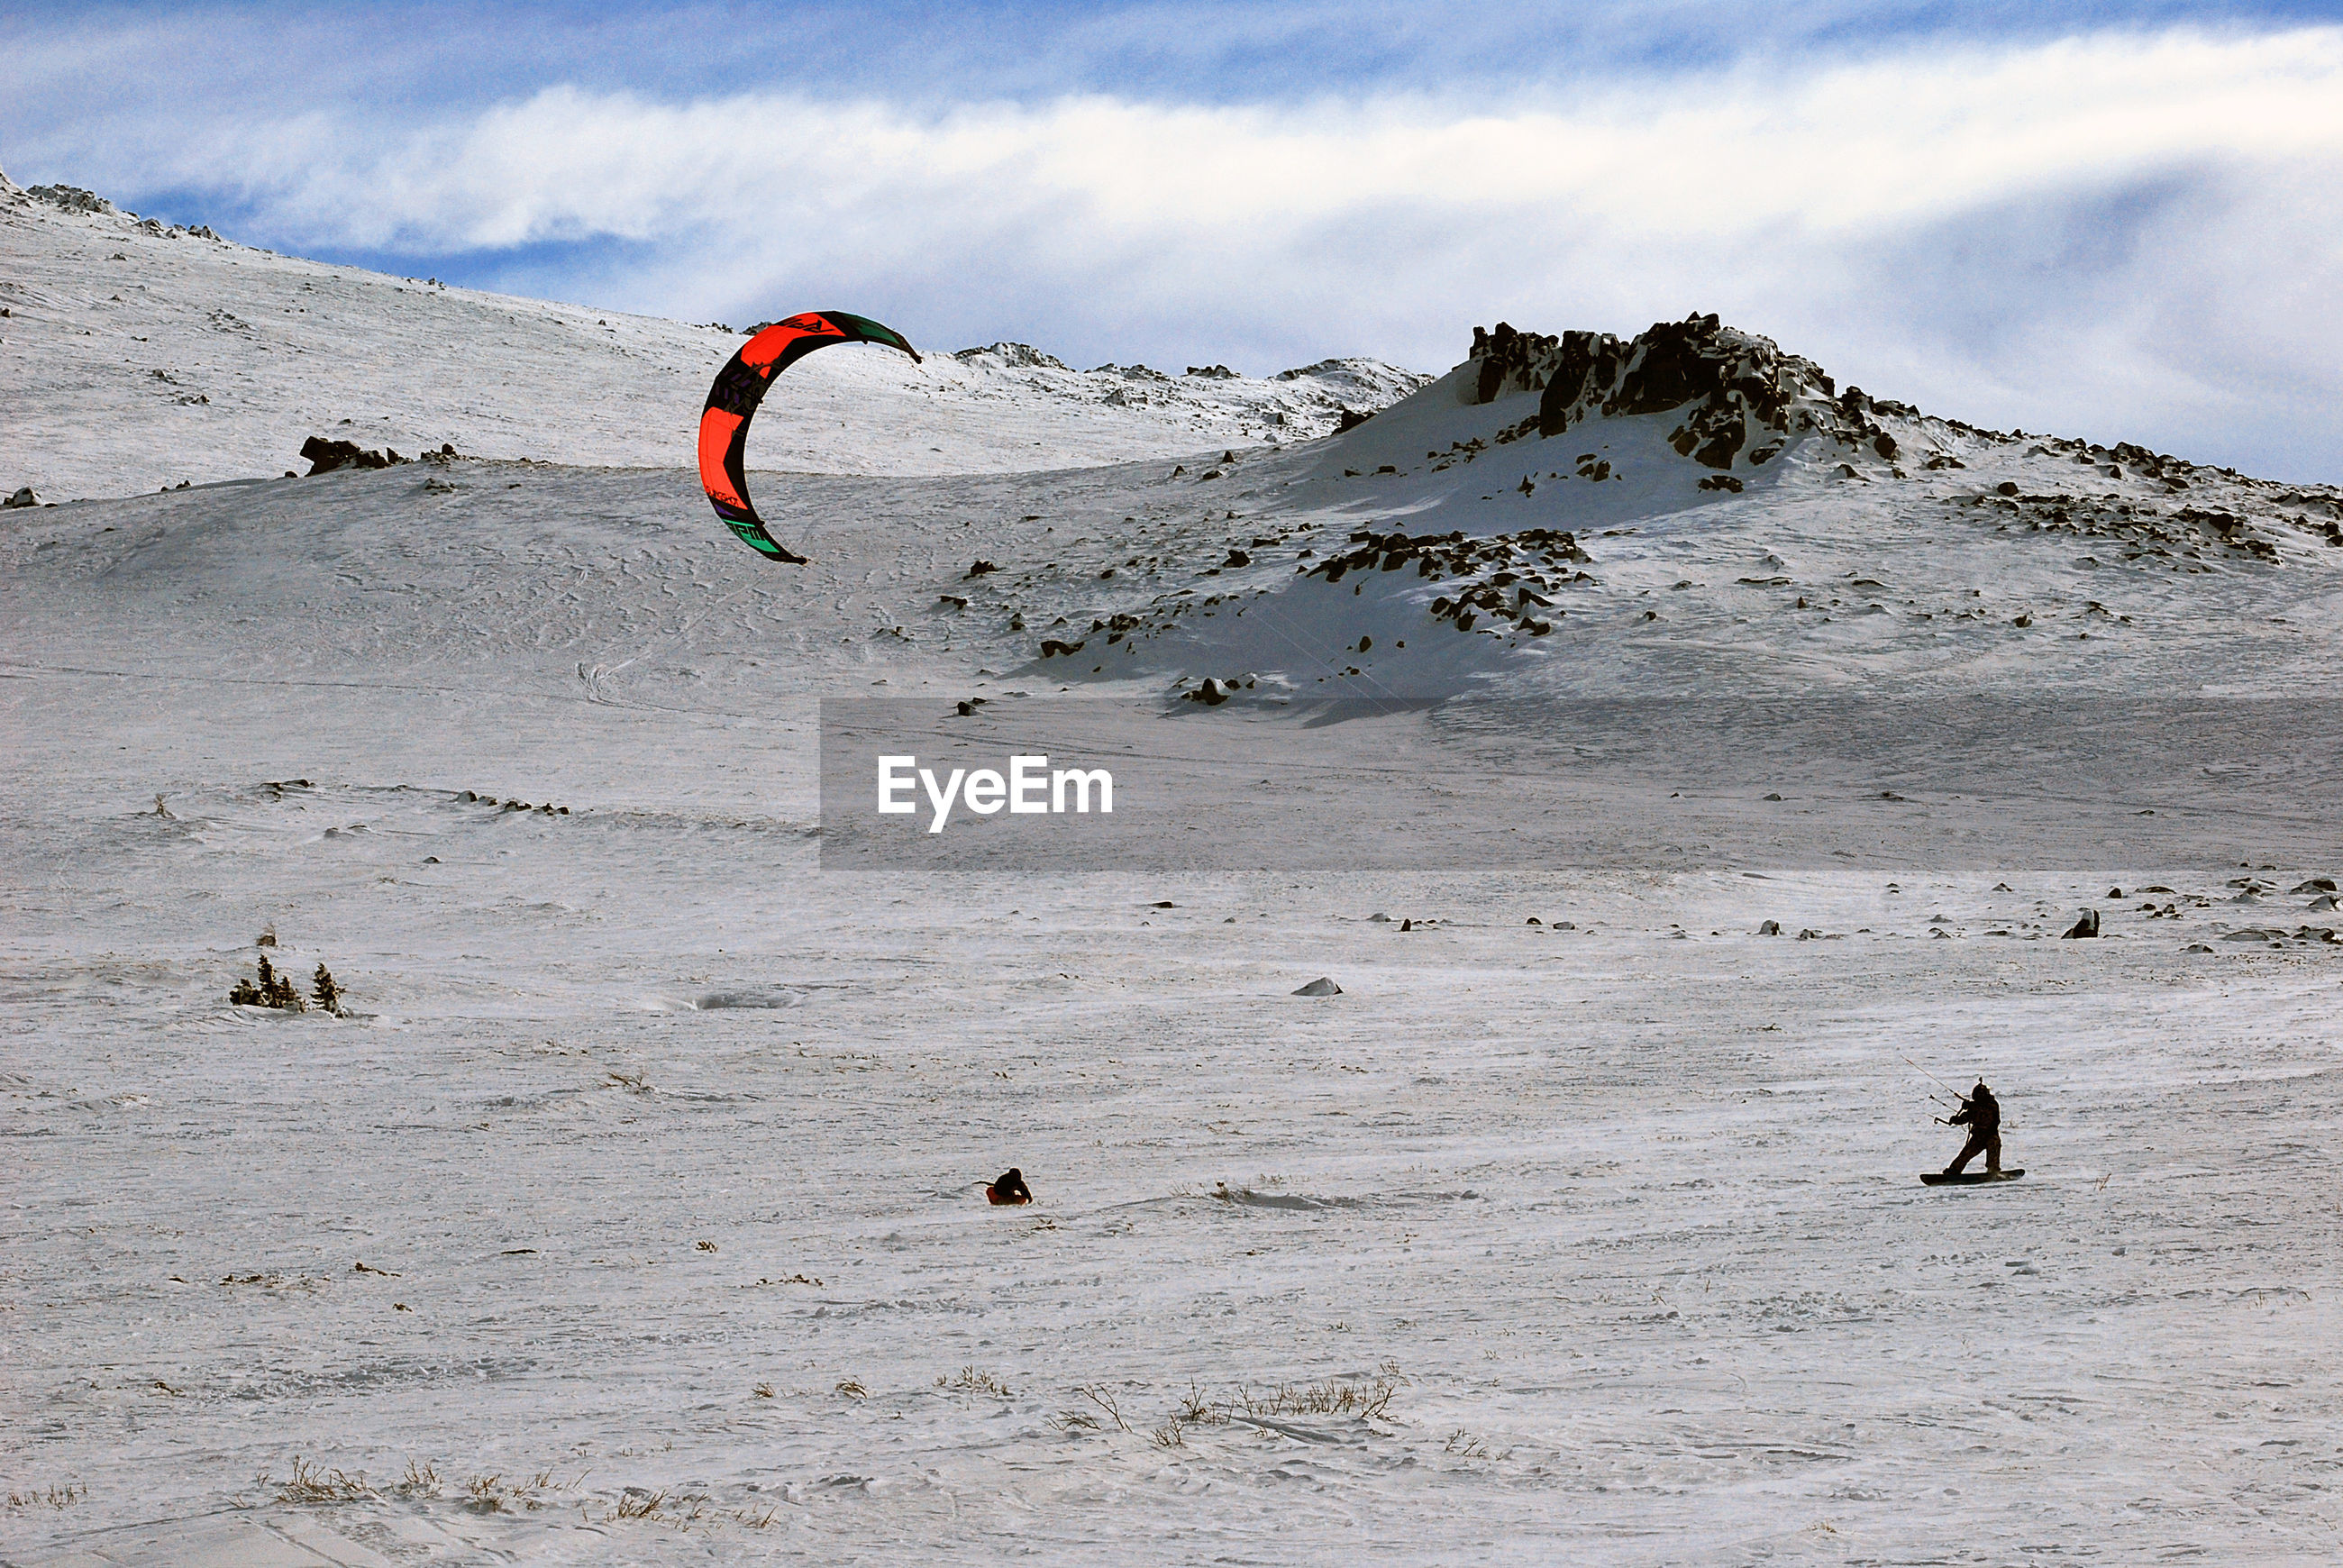 Person kiteboarding at beach against sky